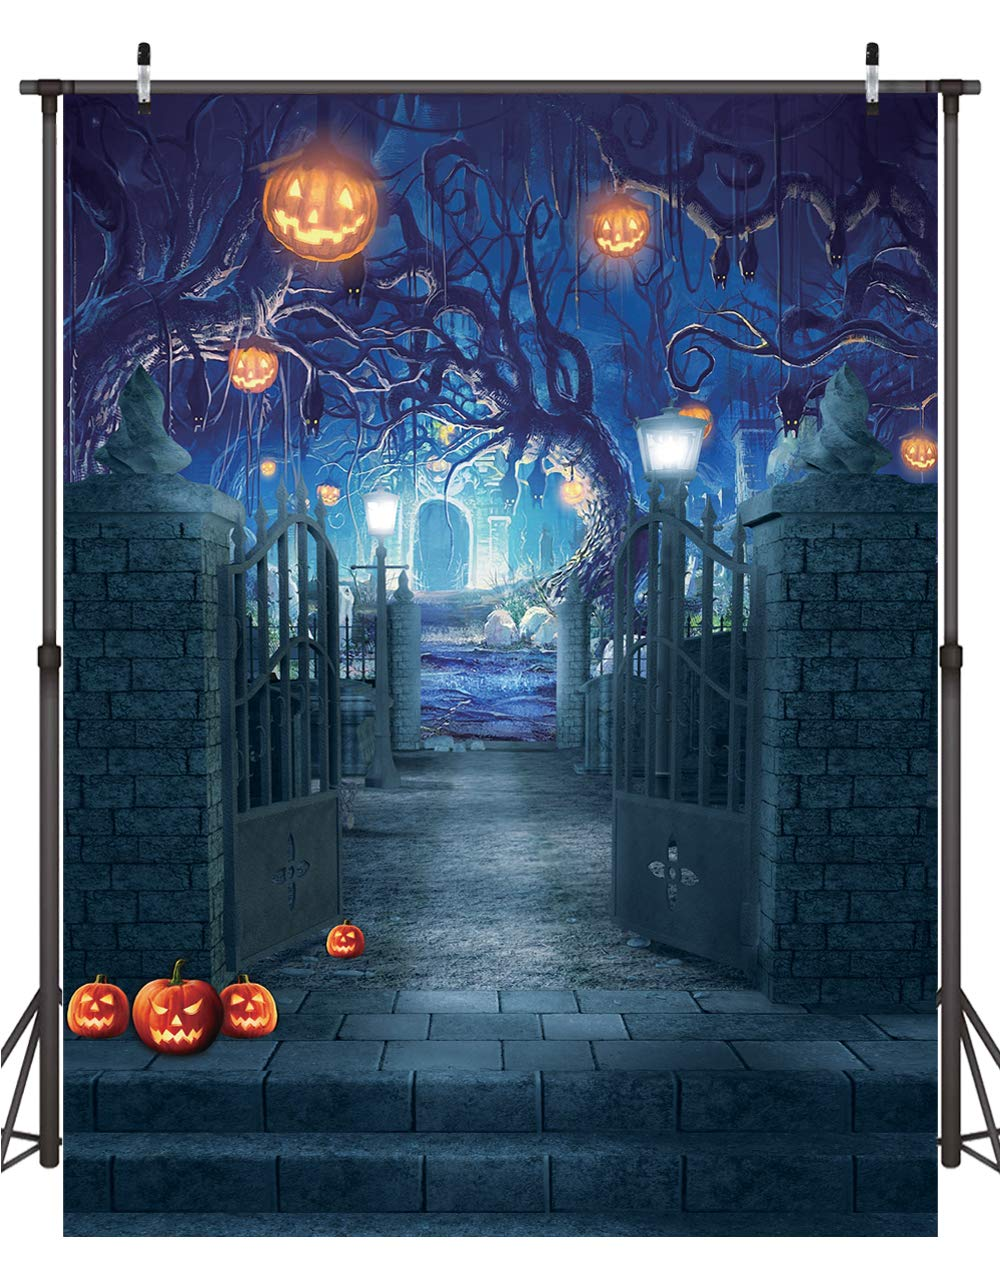 Dudaacvt 6x8ft Halloween Photography Backdrops Halloween Decorations Backdrop for Photography Horrible Party Background Photo Studio Booth Props D210